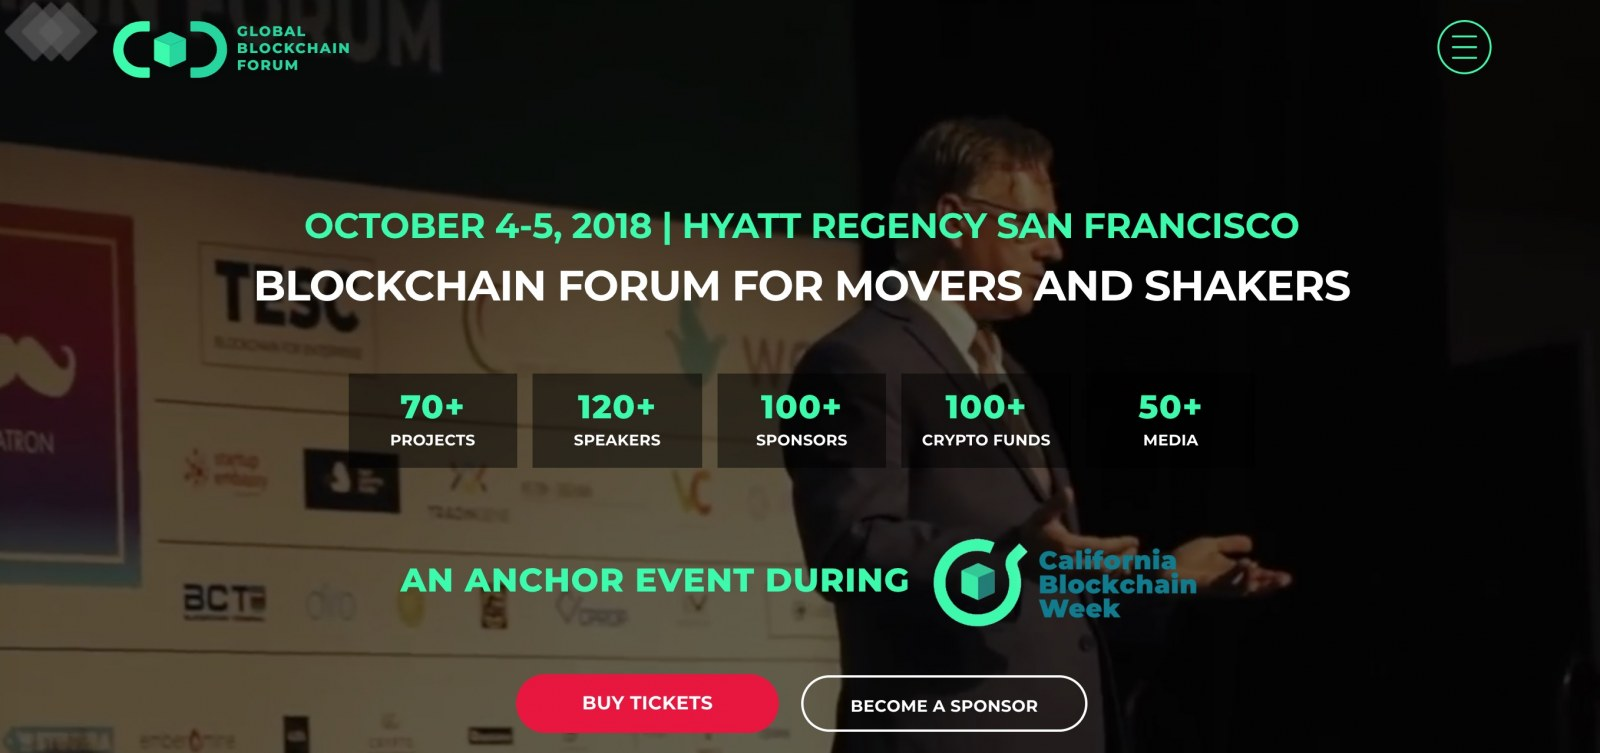 foro 2018 global blockchain